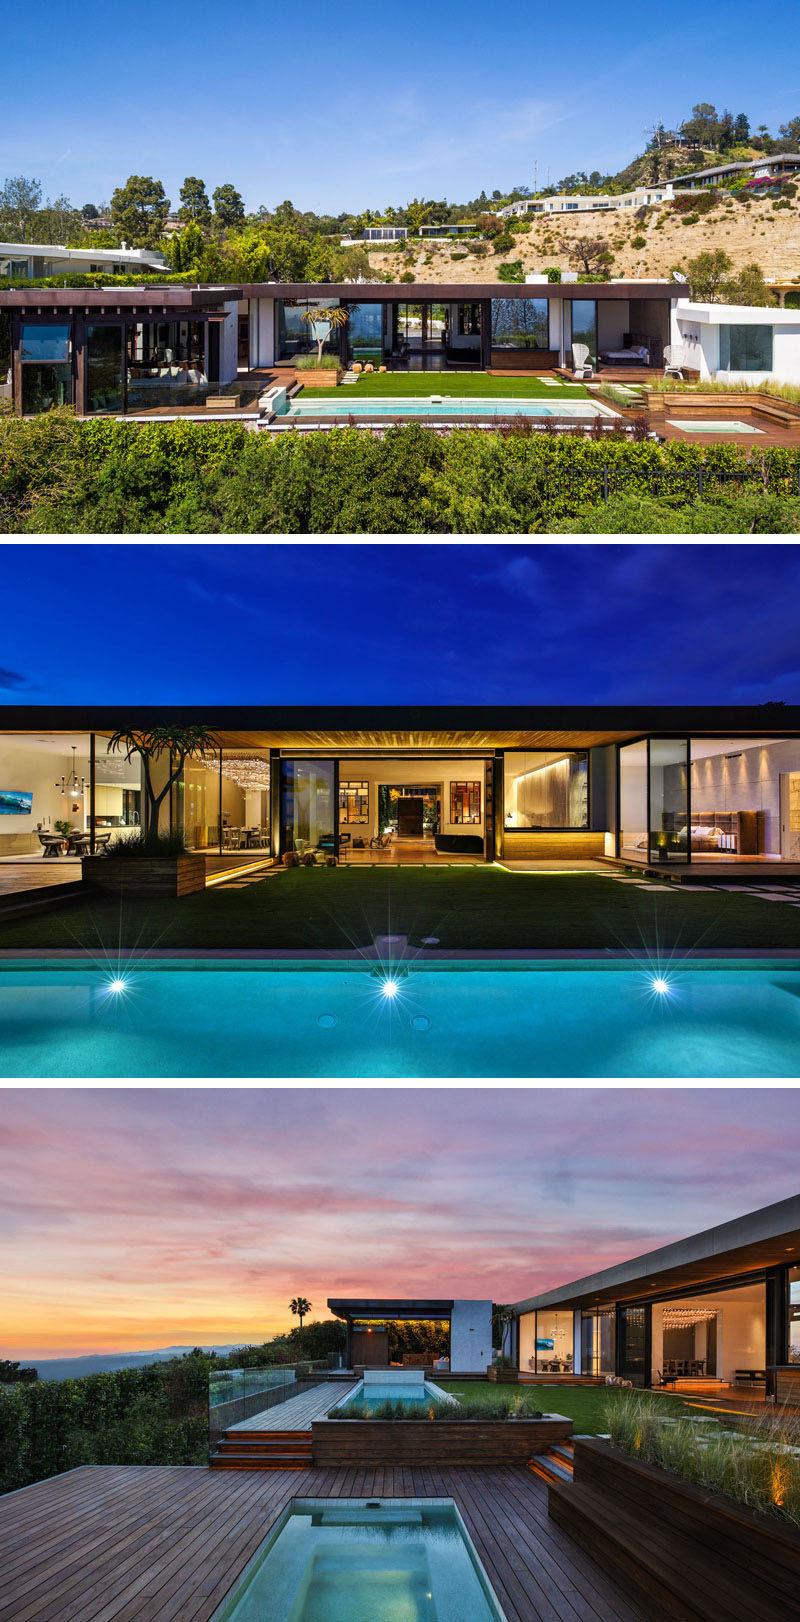 The rear of this modern house has been split up into various multi-level areas, with a pool house, swimming pool, lawn and sunken hot tub. #ModernHouse #SwimmingPool #Landscaping